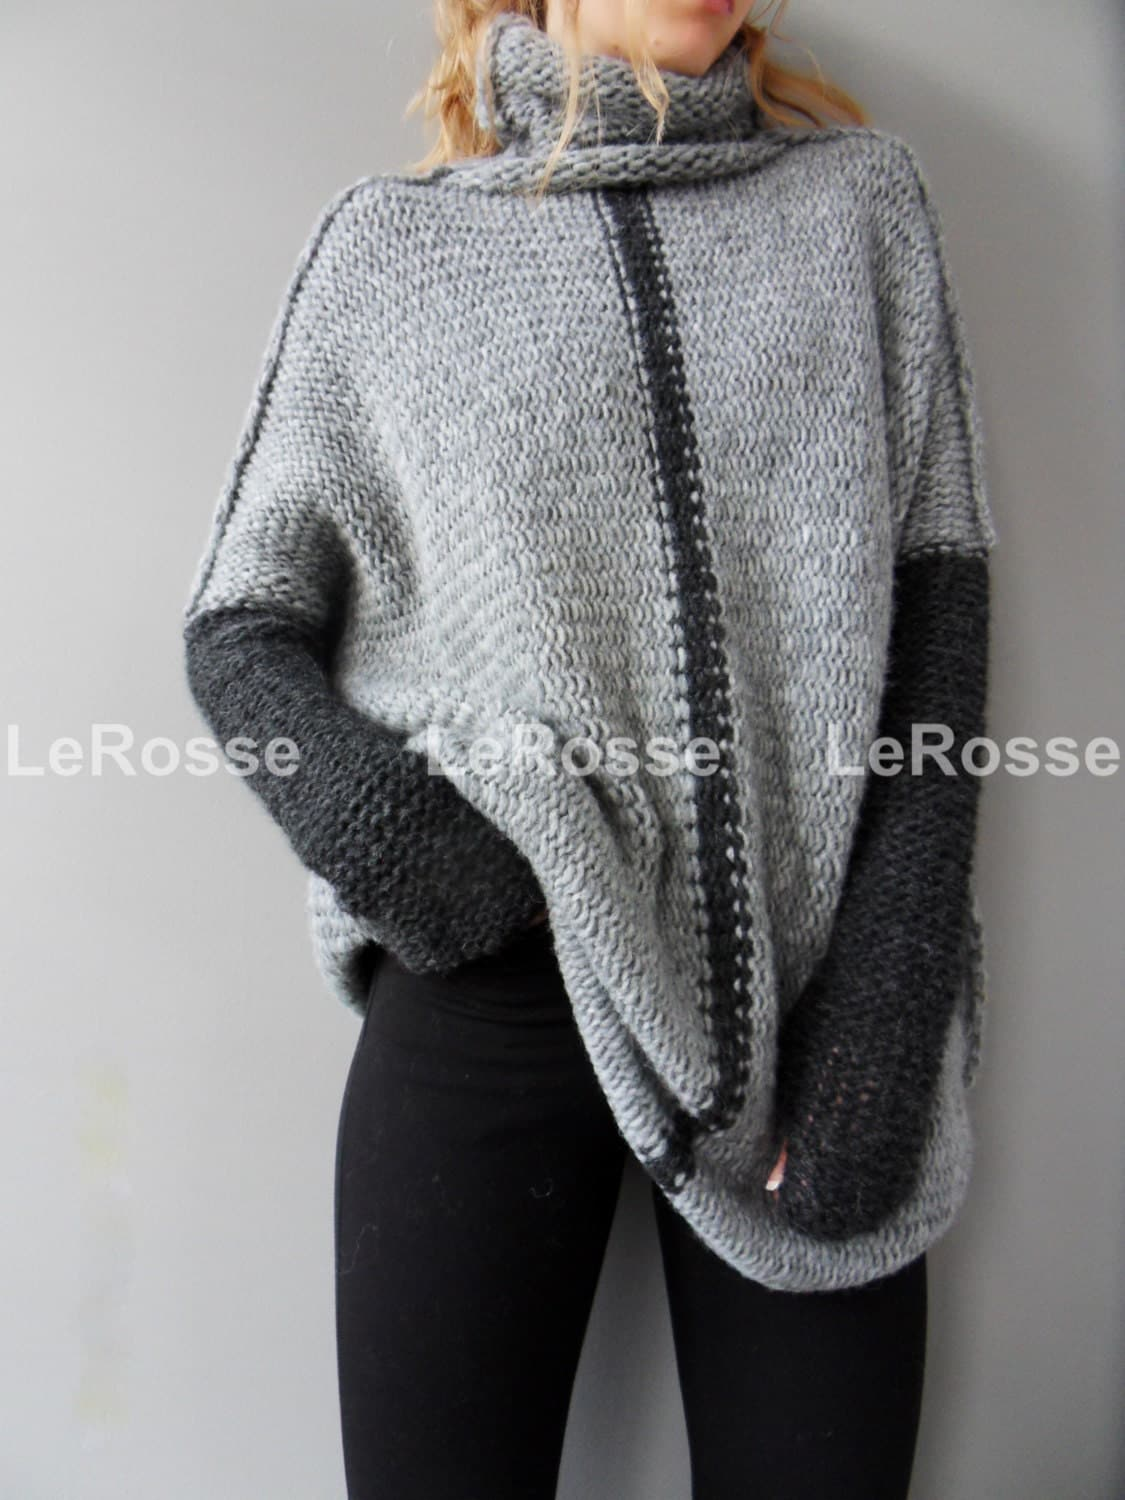 Oversized/Slouchy/Loose knit sweater. Aplaca sweater. Chunky